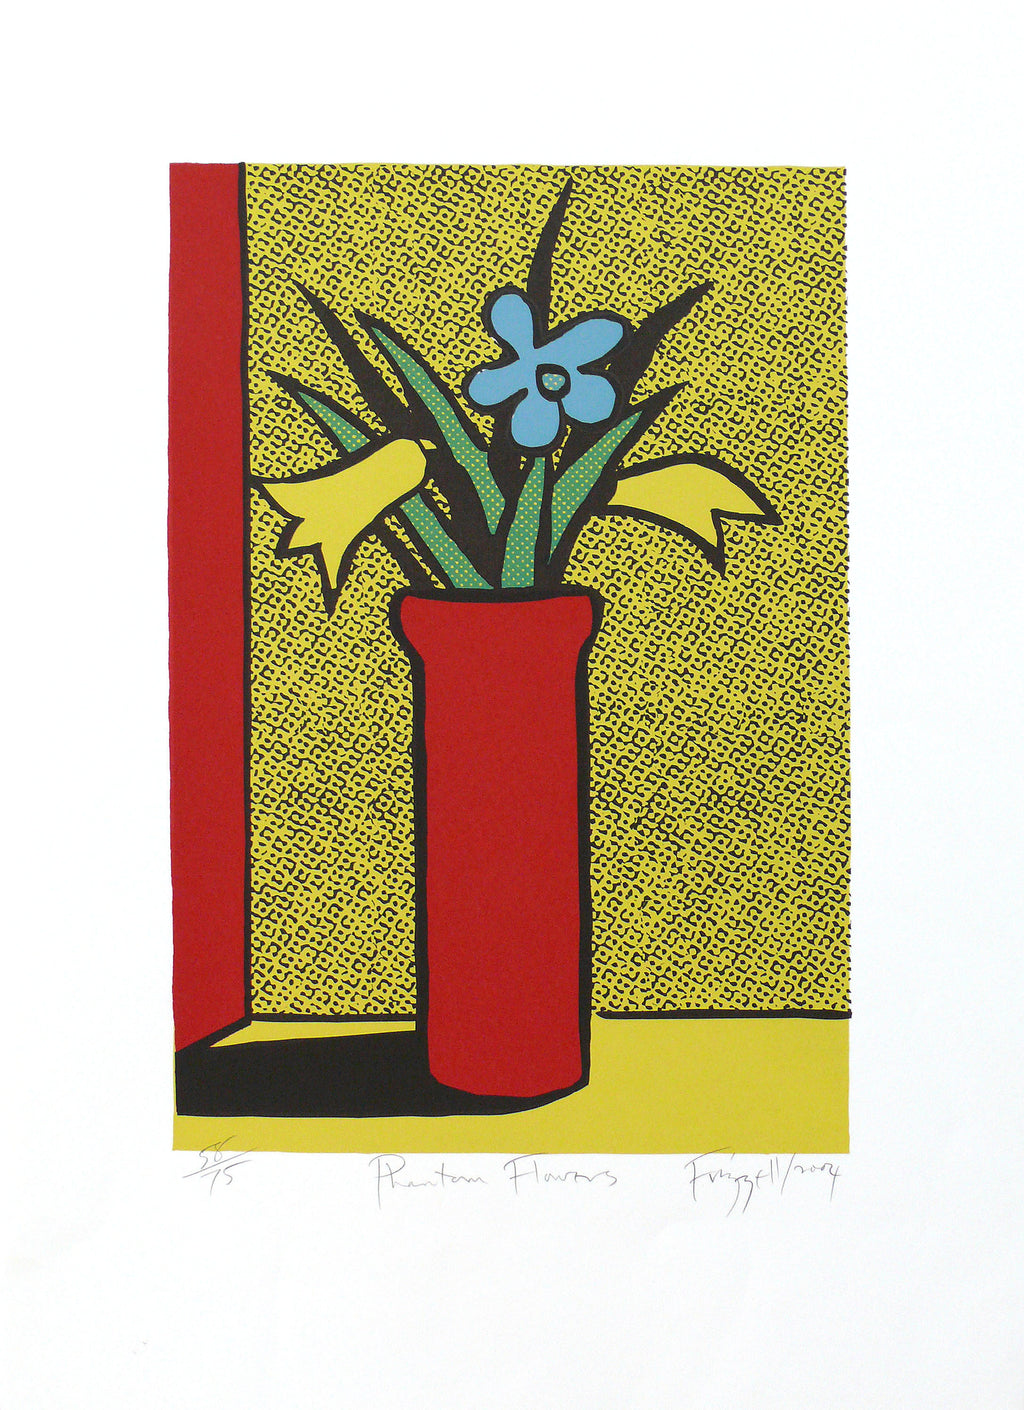 Frizzell_2004_Phantom Flowers_silkscreen on paper_700 x 500mm_aFRI547-04